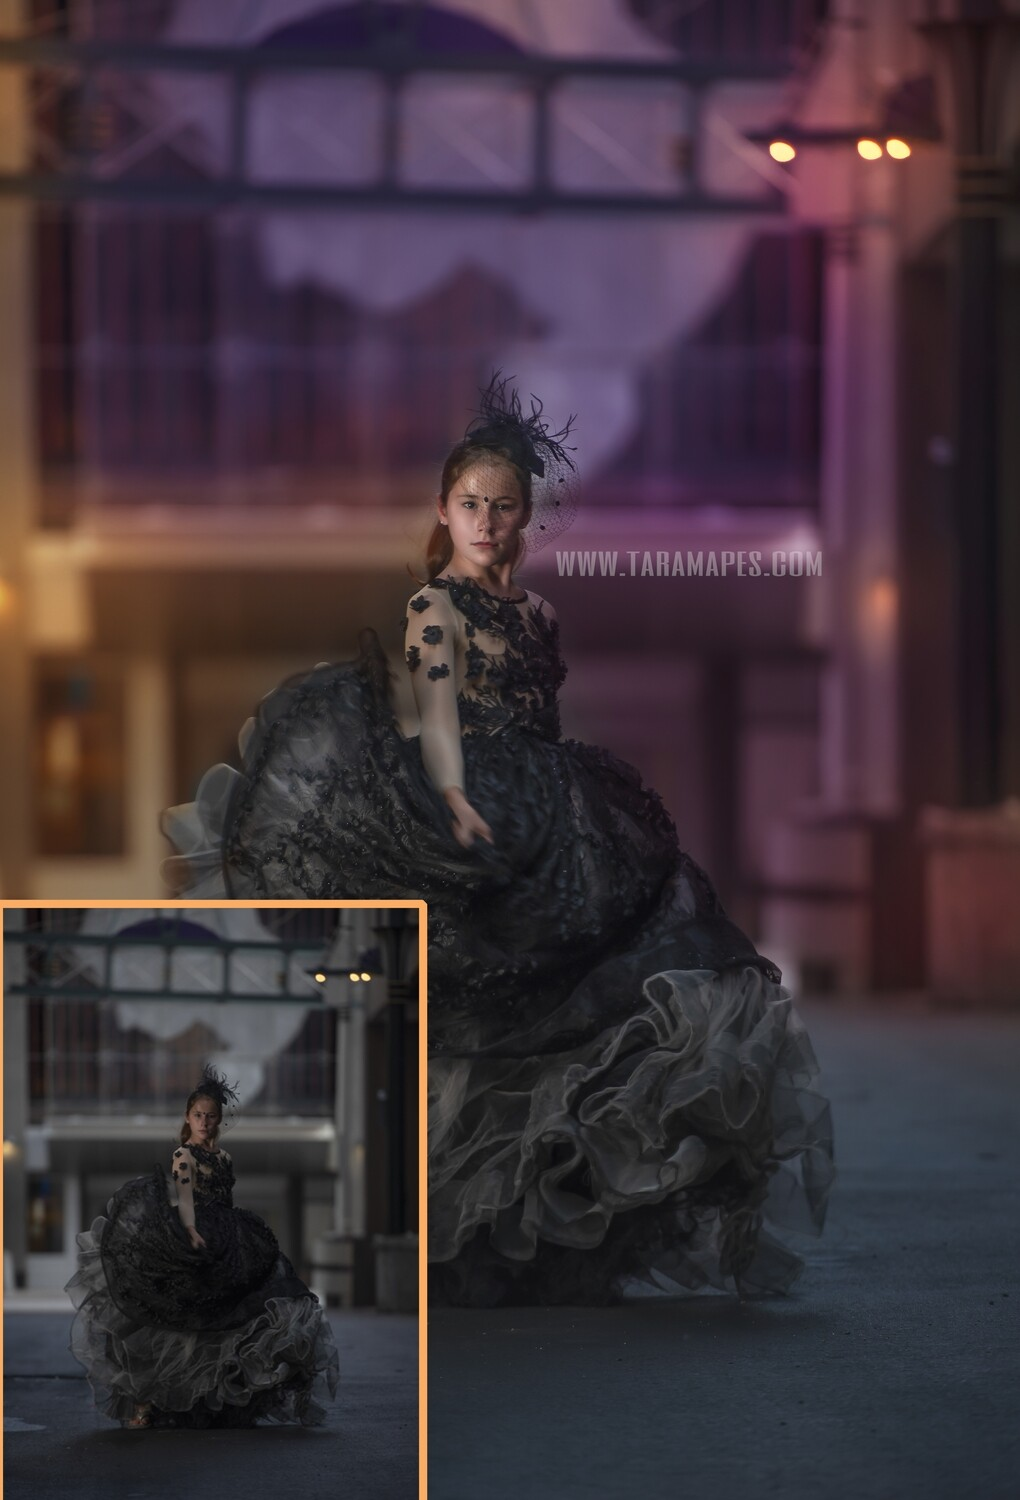 Couture in Color Photoshop Editing Tutorial by Tara Mapes